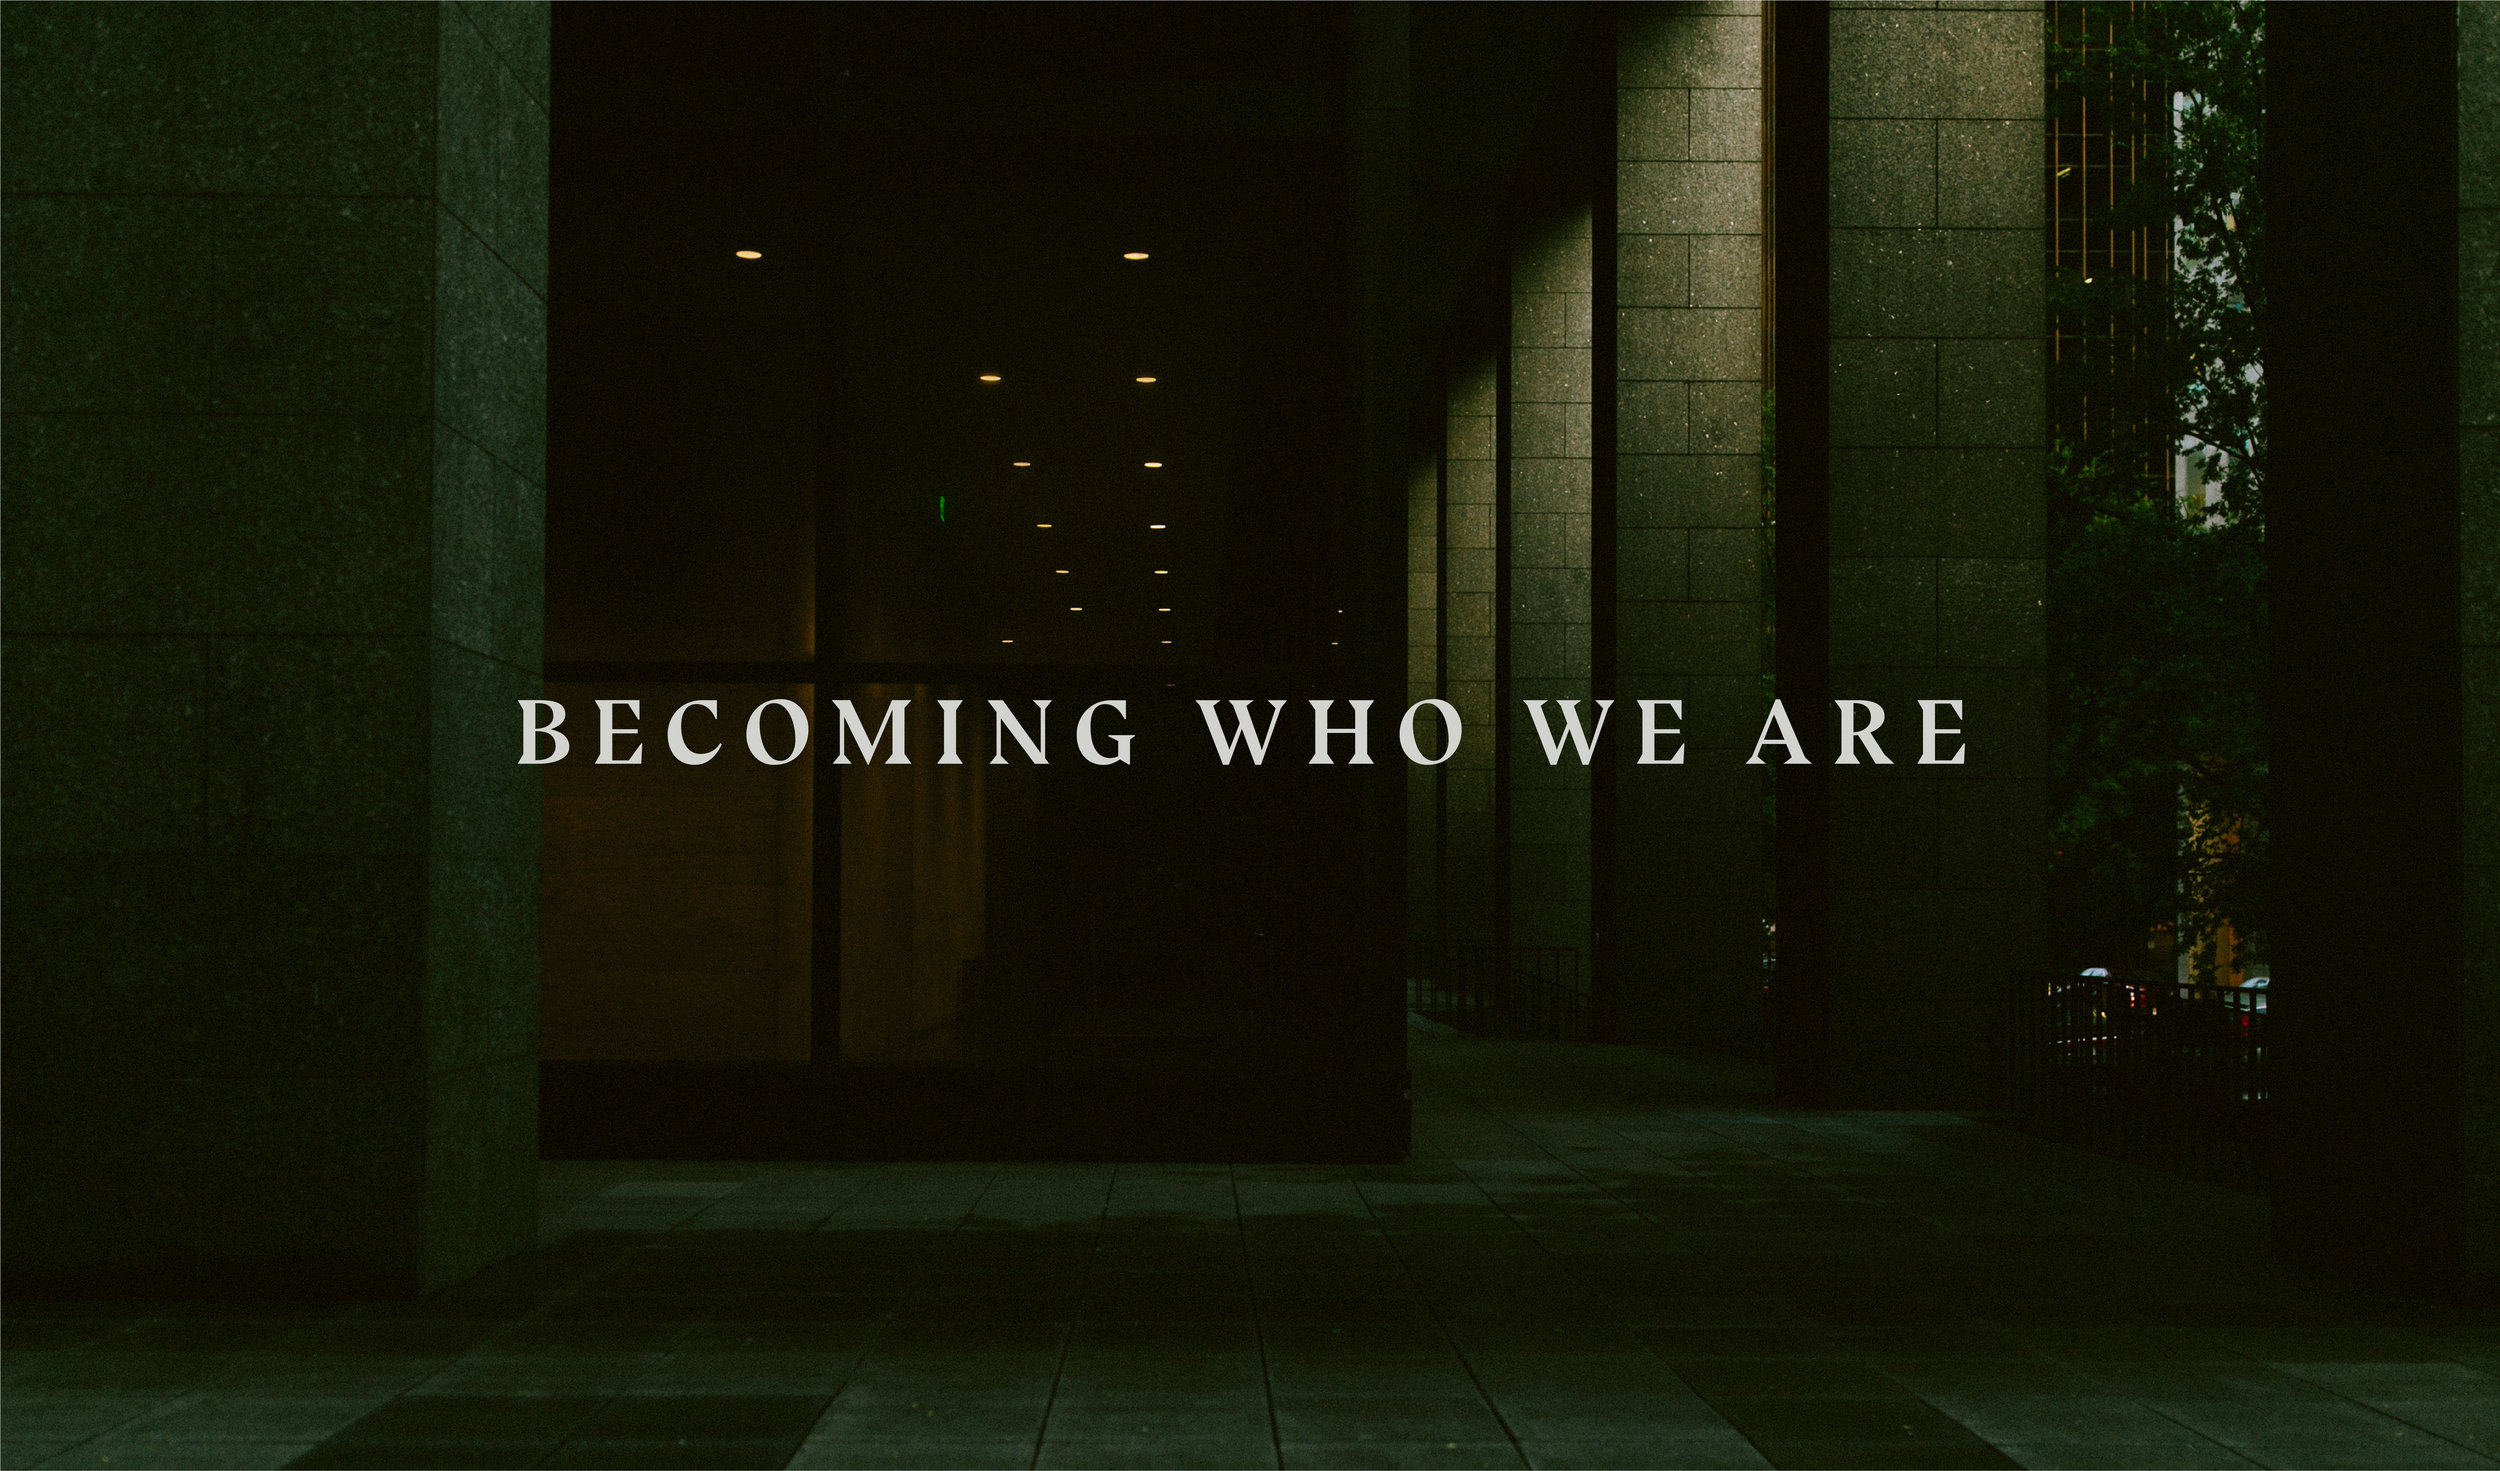 Becoming who we are -02.jpg